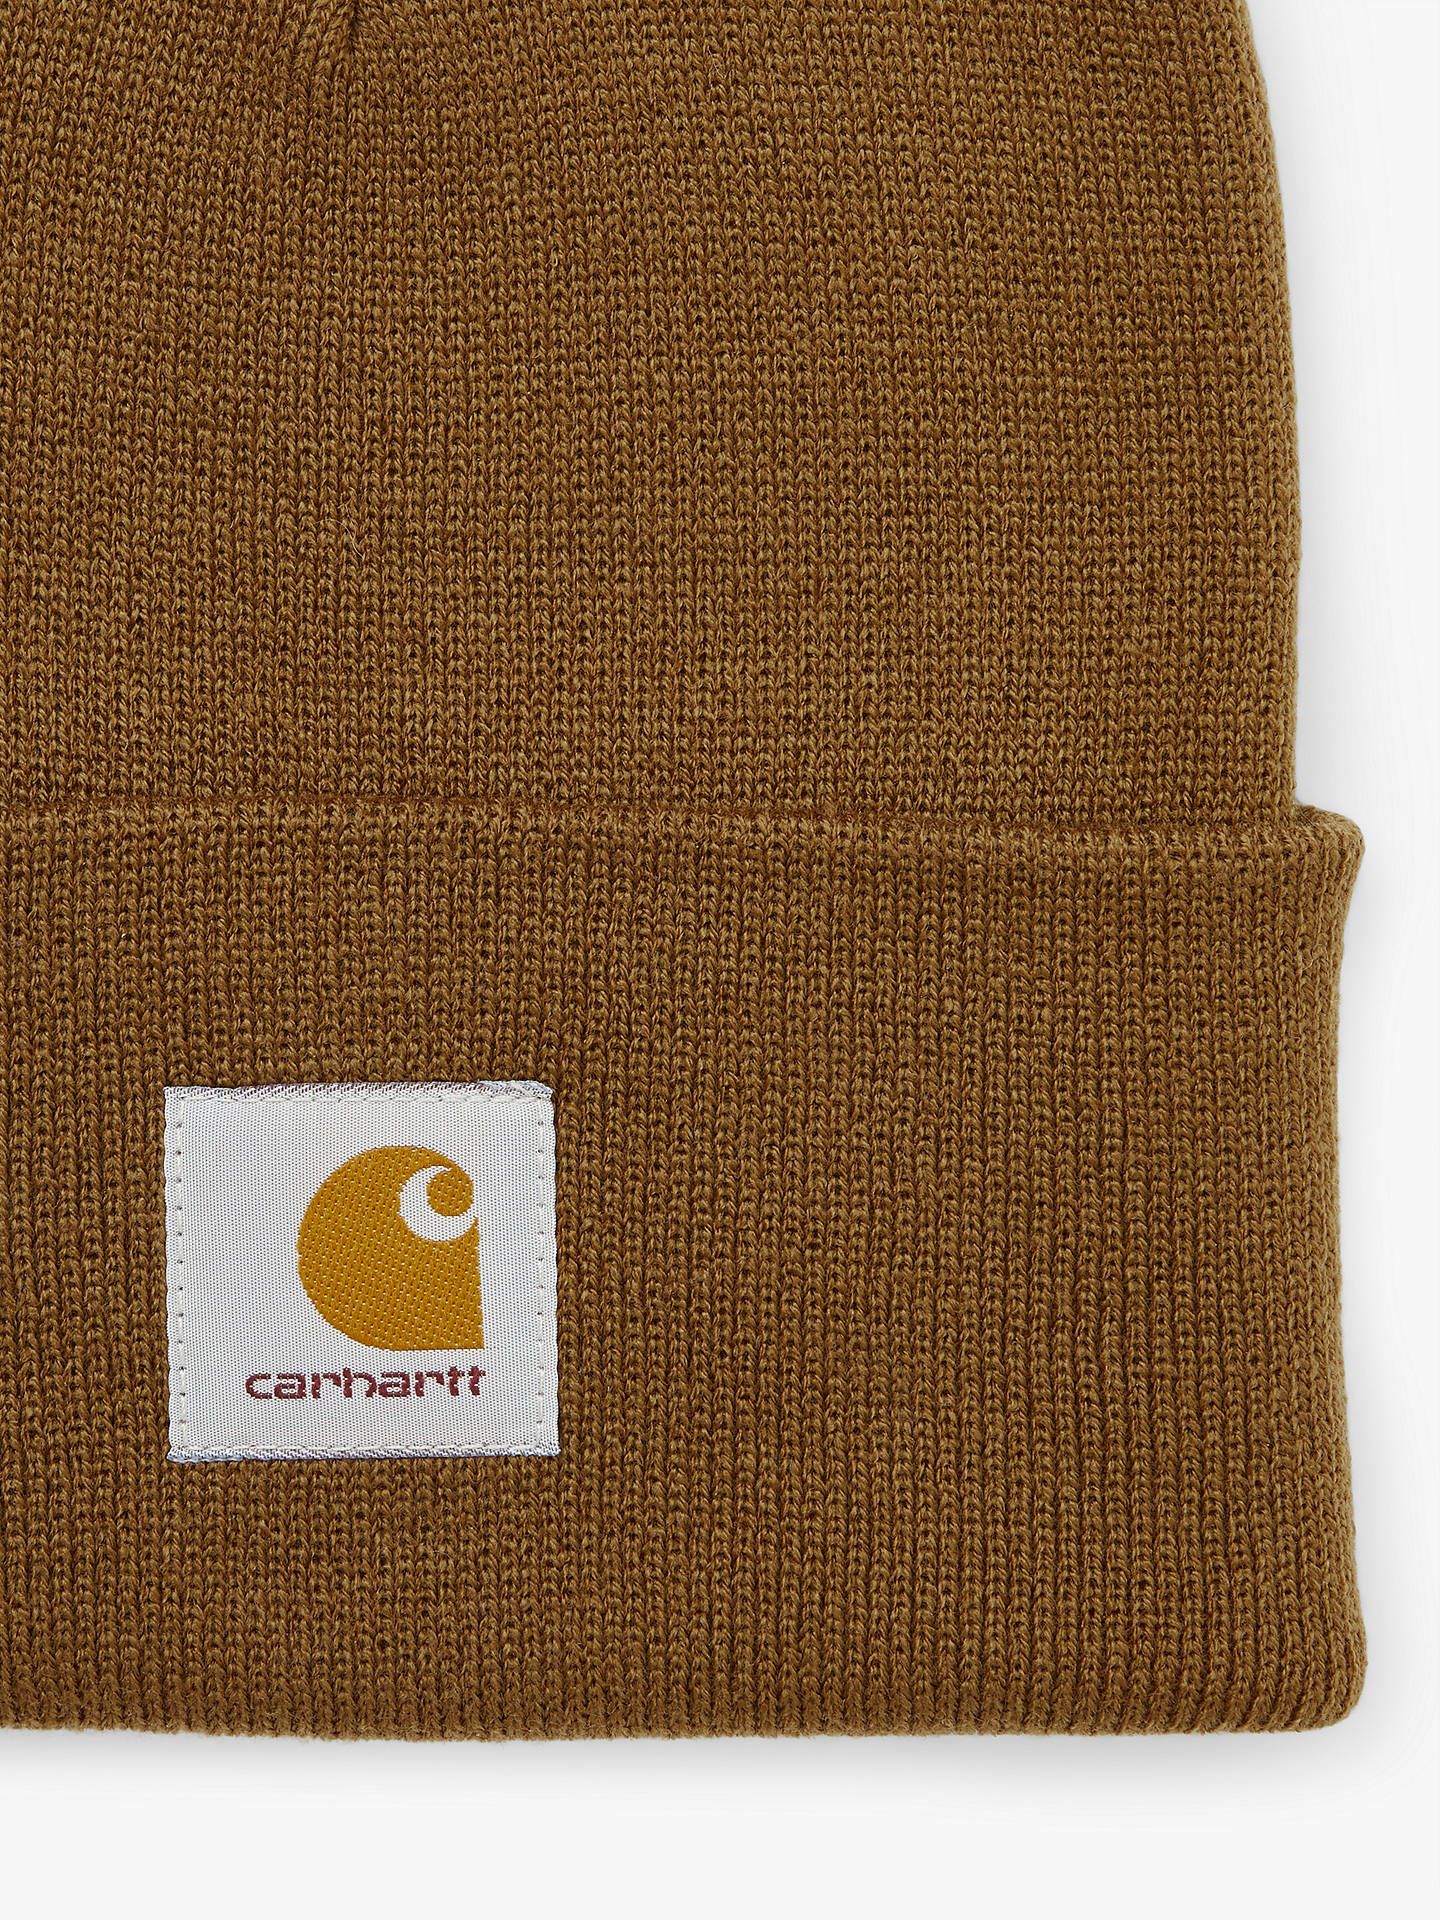 954bc040aa1 Carhartt WIP Watch Beanie at John Lewis   Partners